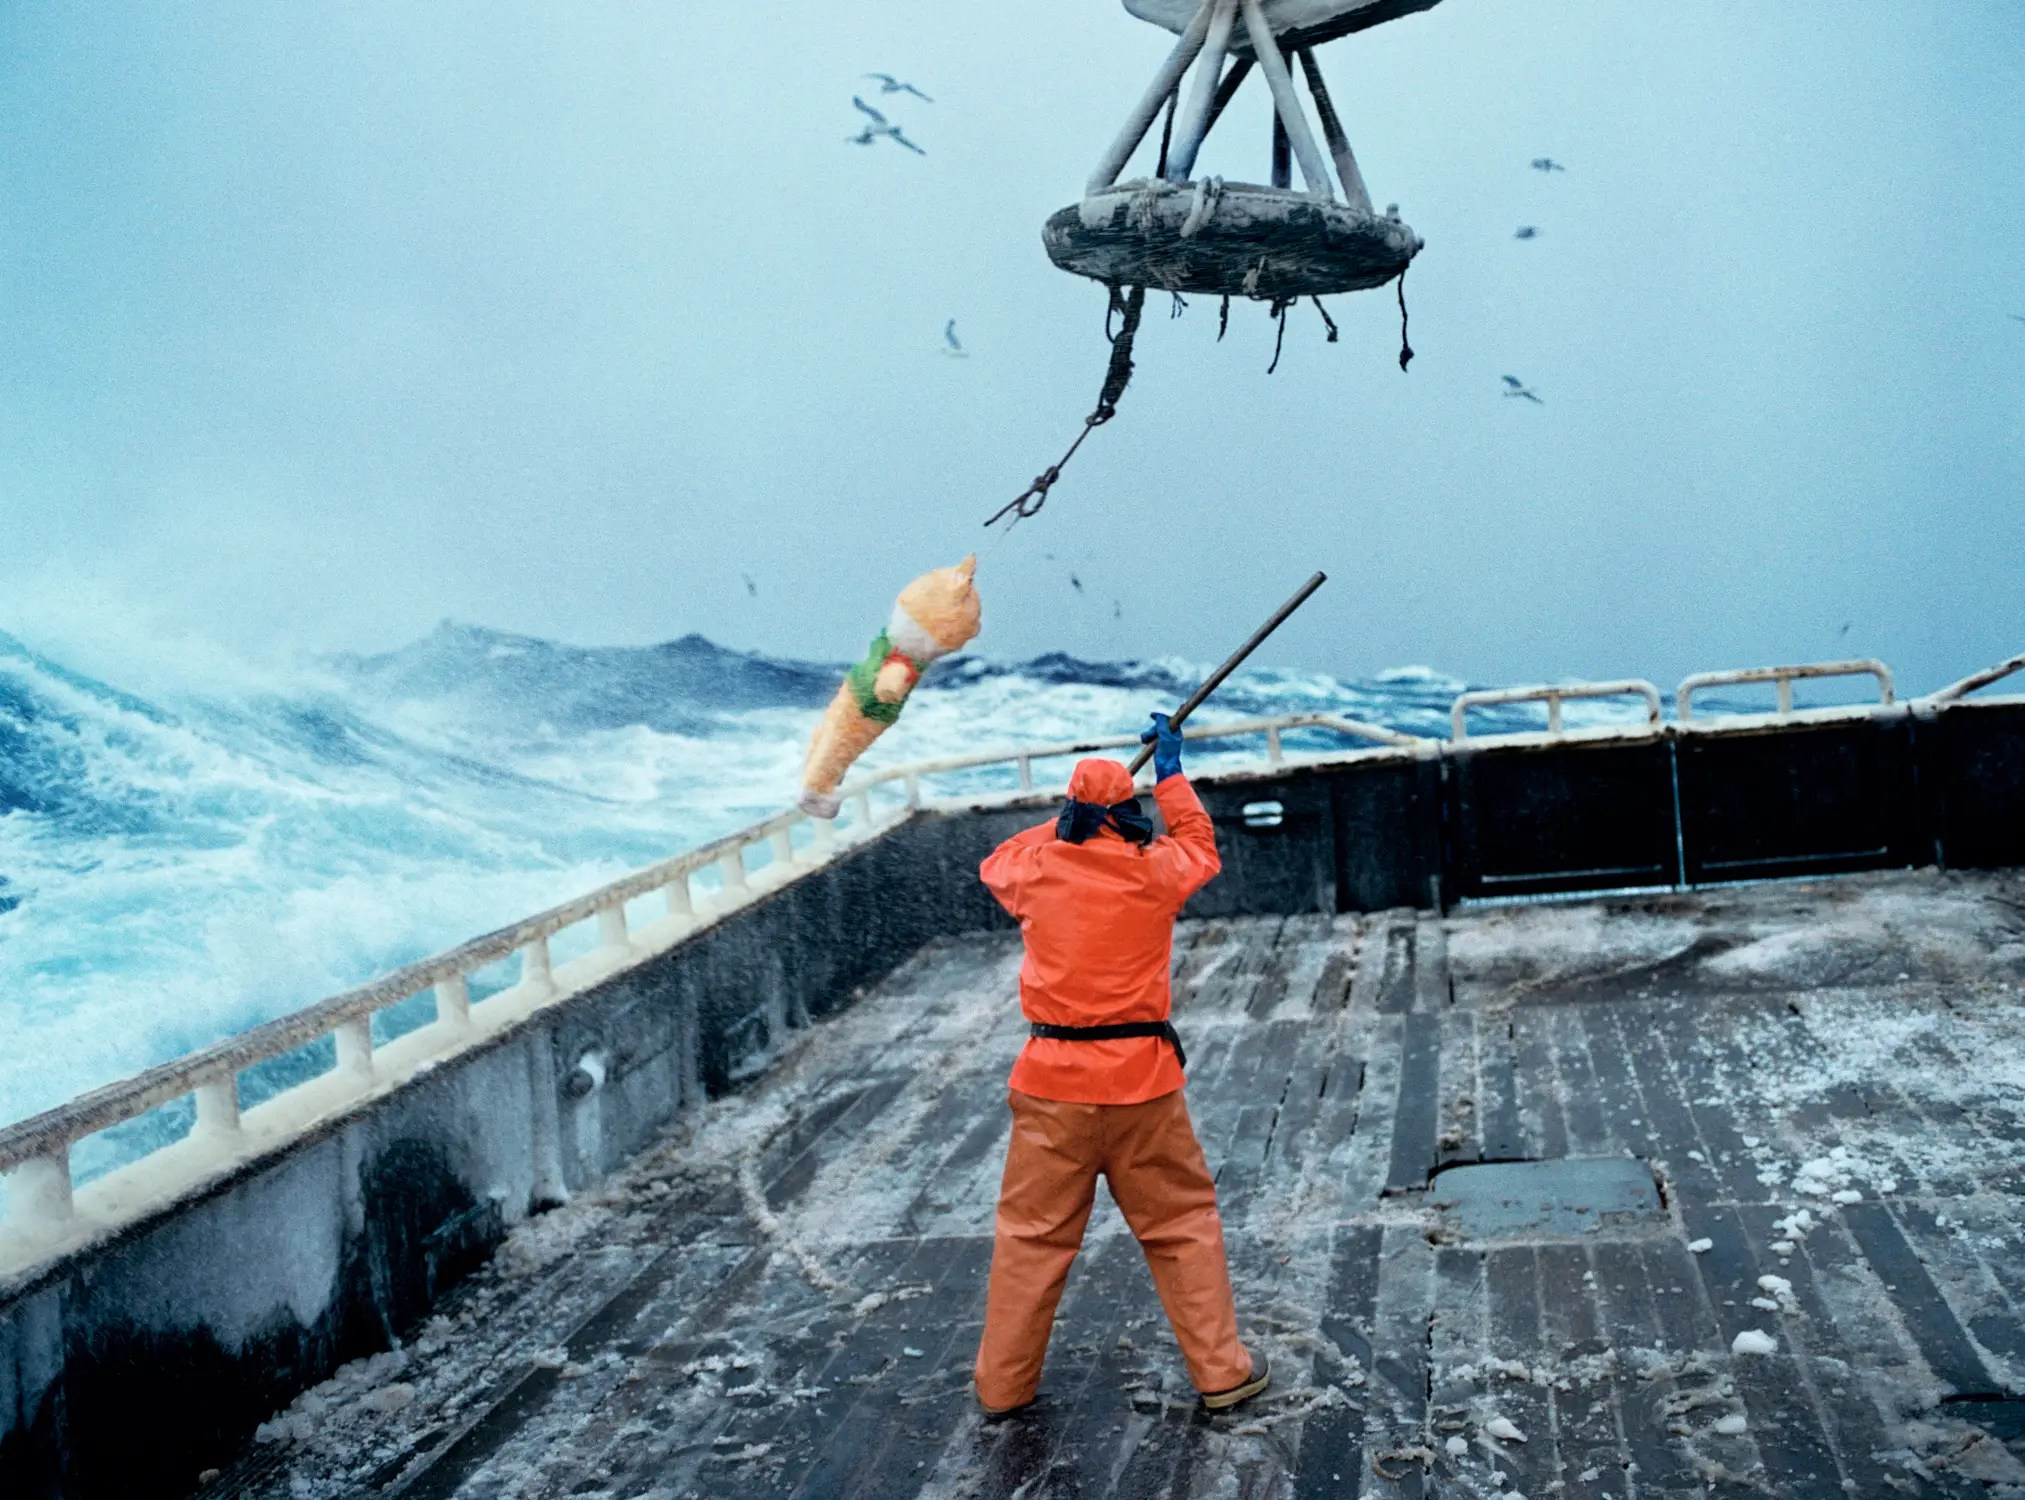 """There are a lot of near misses even on the safest of crab boats,"" Arnold says. One time, a crane was lifting a crab pot onto the Rollo's deck when it went over the crab sorting table, where Arnold and other crew members were sorting. As the pot went over, the cable on the crane snapped. The 800-pound pot fell on top of the table, just missing Arnold and his crew members. Here, we see the crane in happier times, as a crew member hits a pinata."